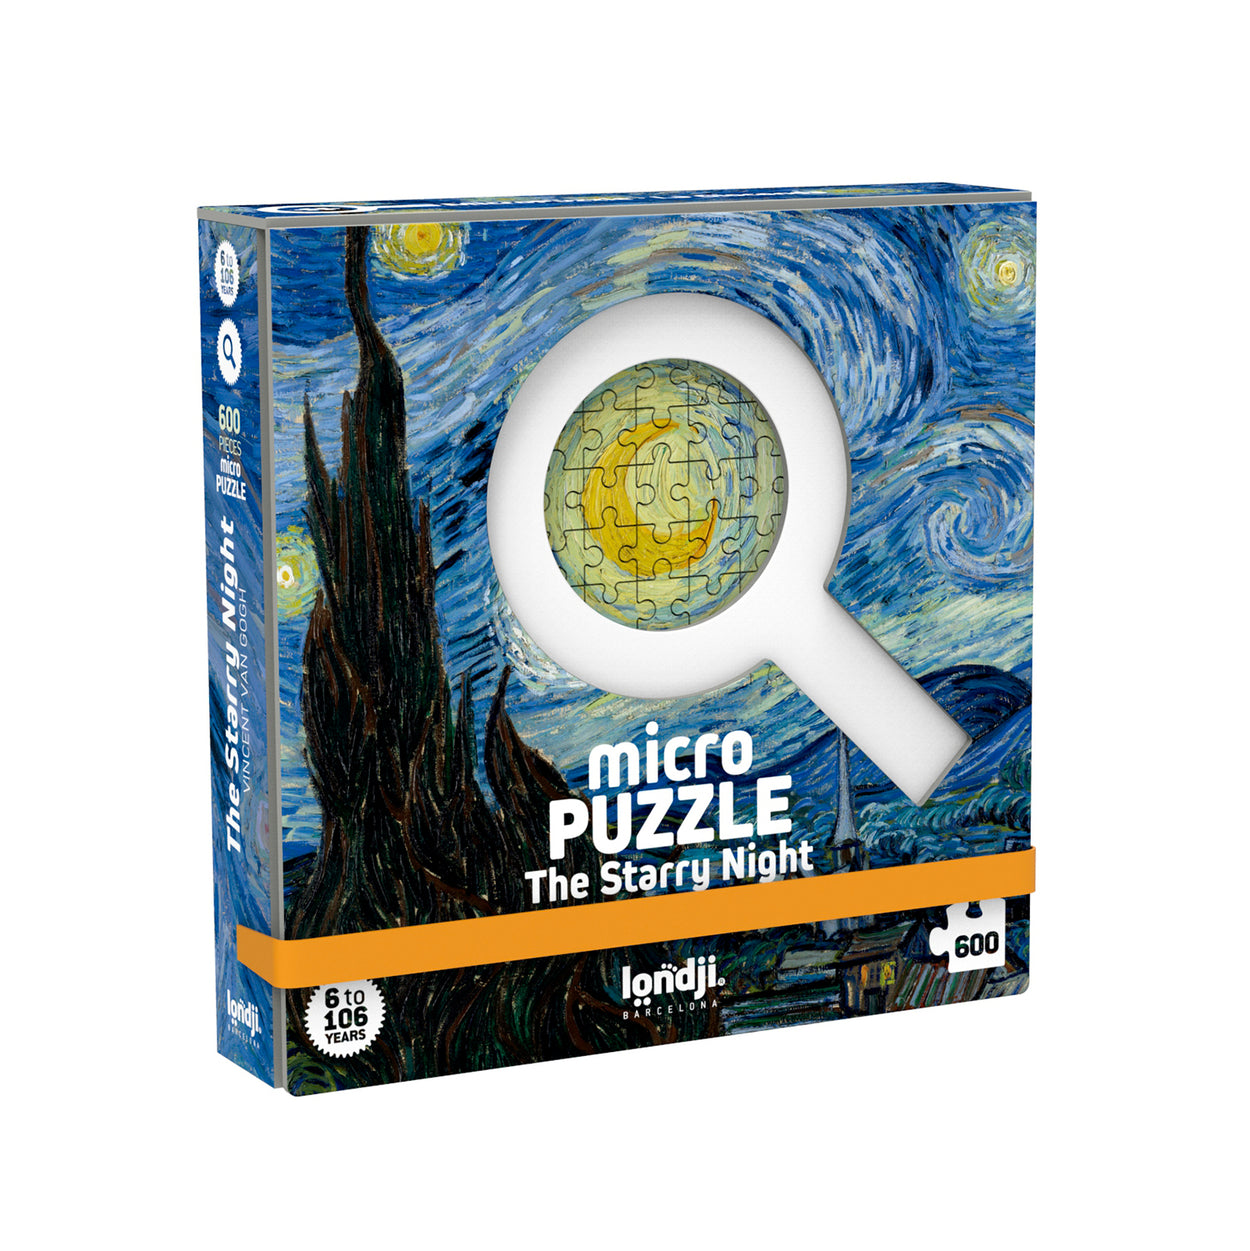 Micro Puzzle Starry Night (600 pieces) by Londji